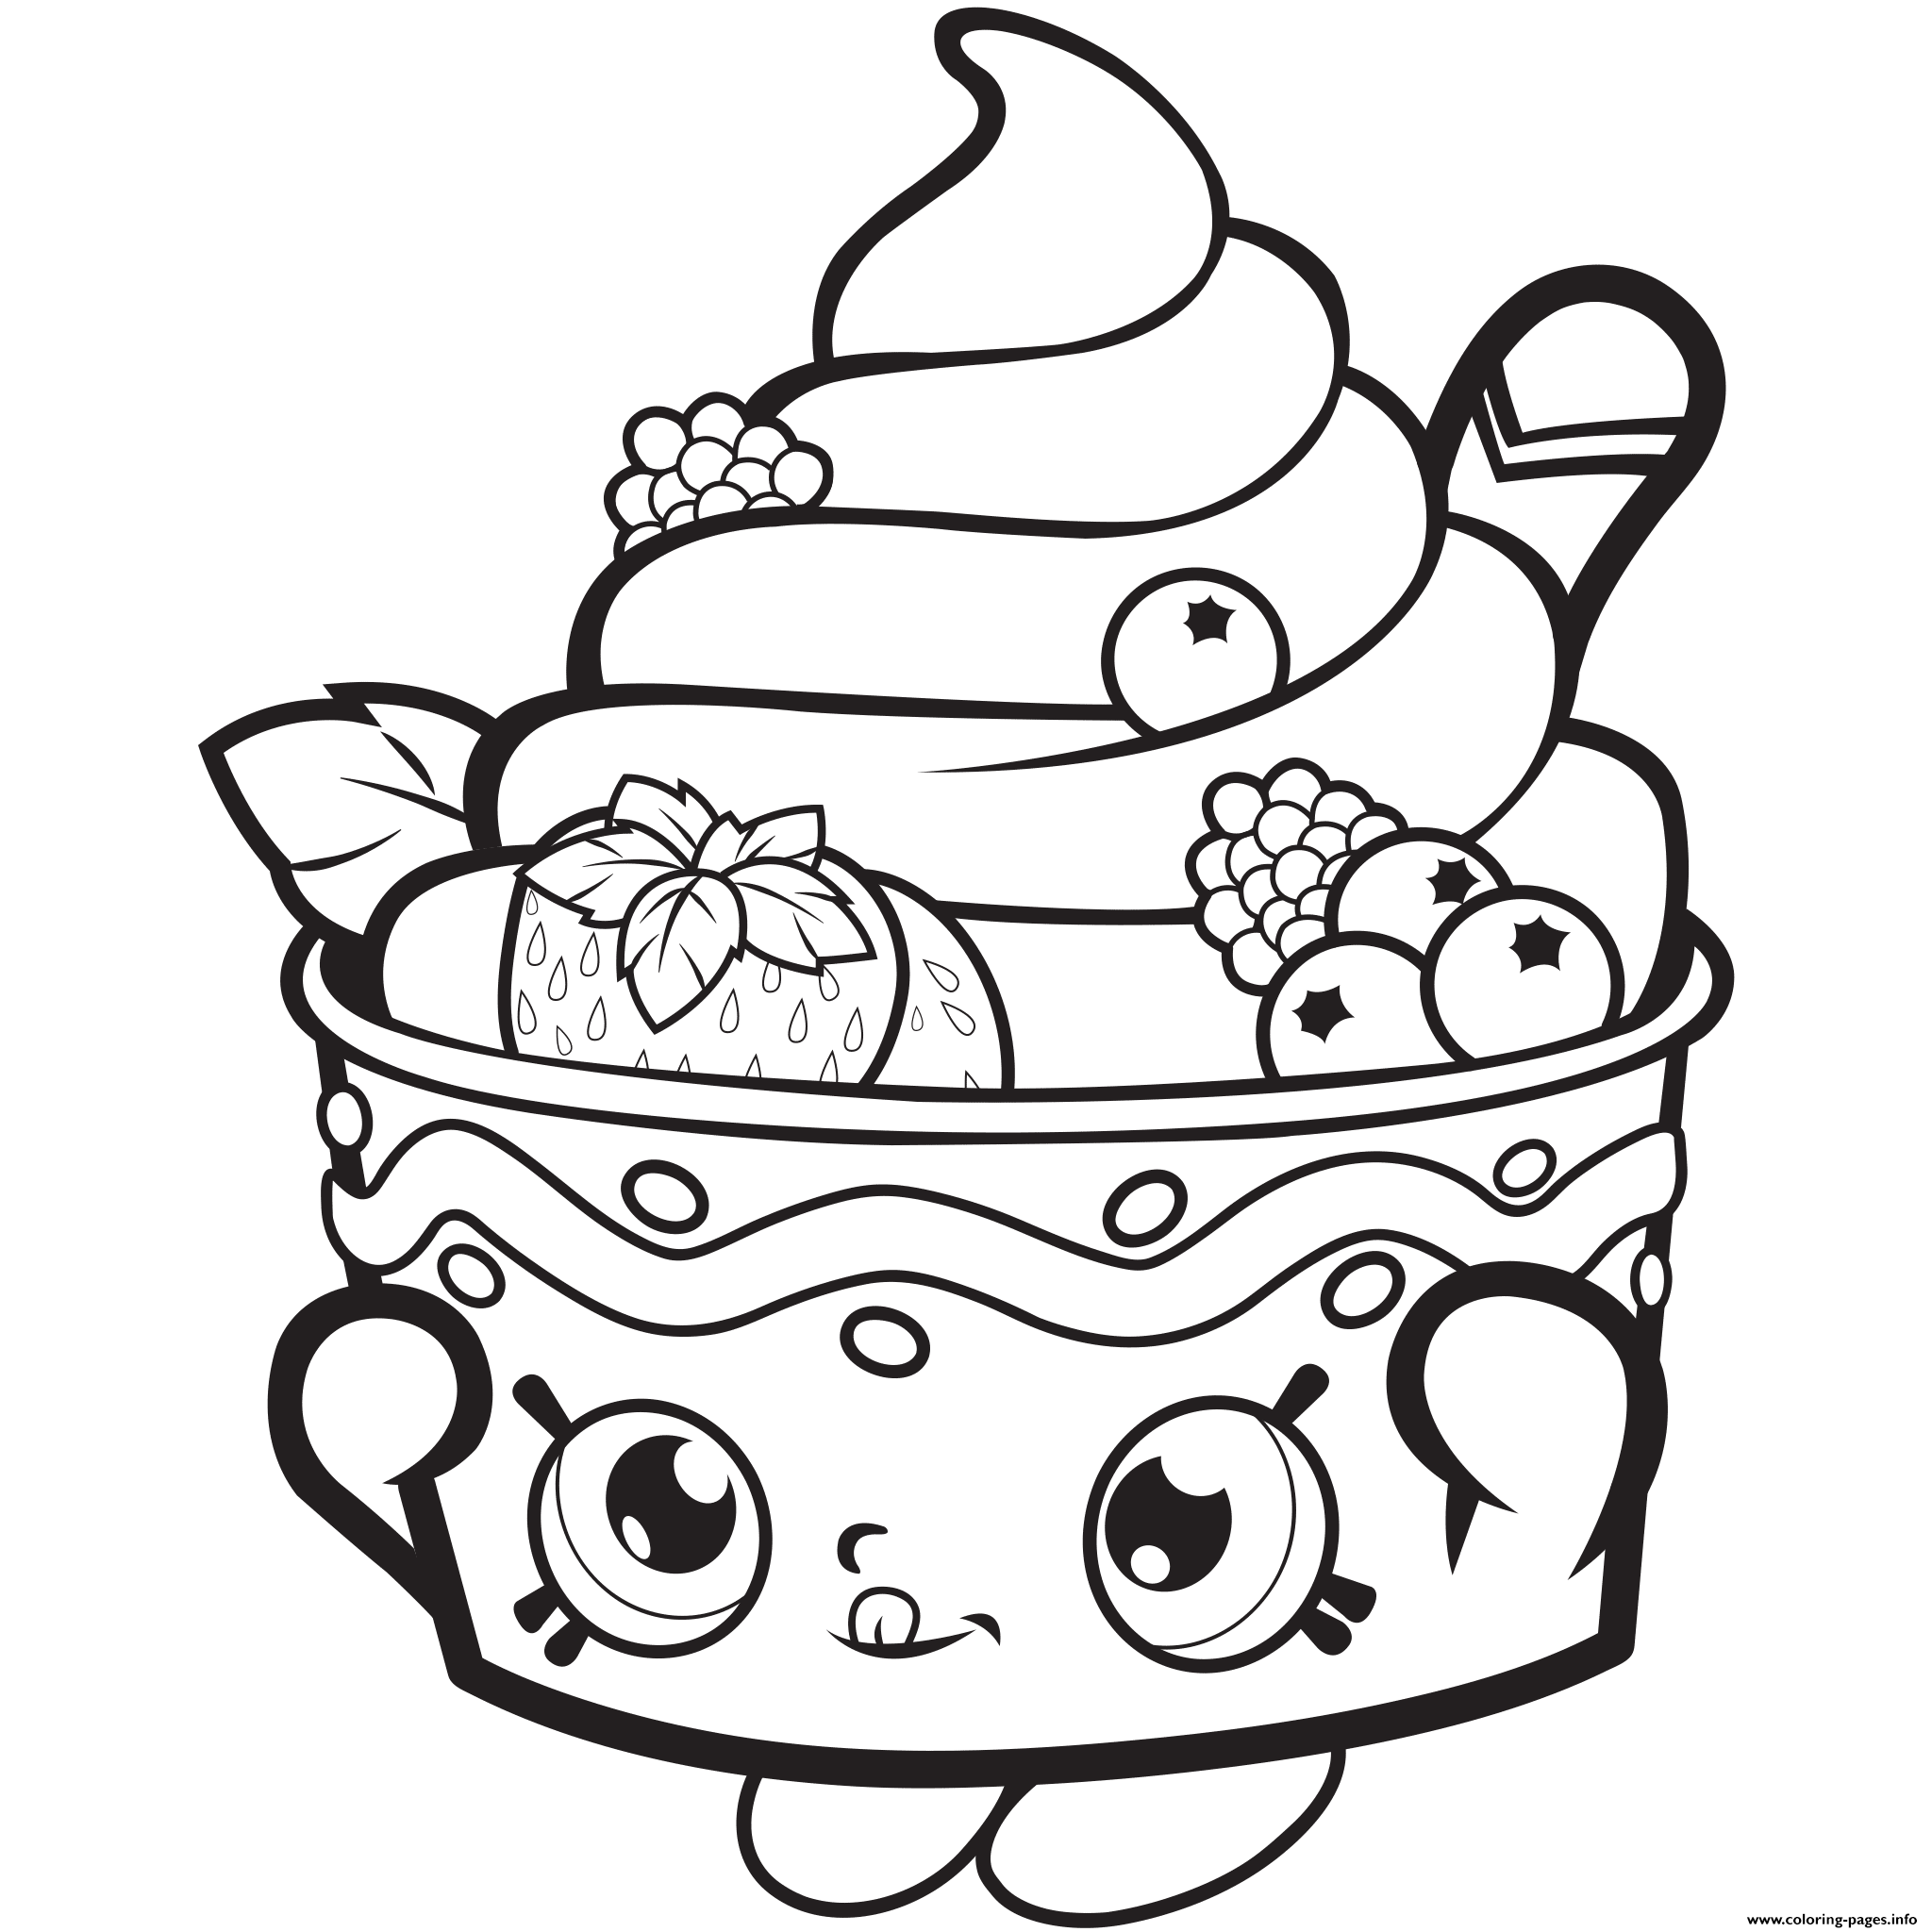 Frozen Yo Chi Printable Shopkins Season 1 One Coloring Pages Print Download 452 Prints 2016 10 07